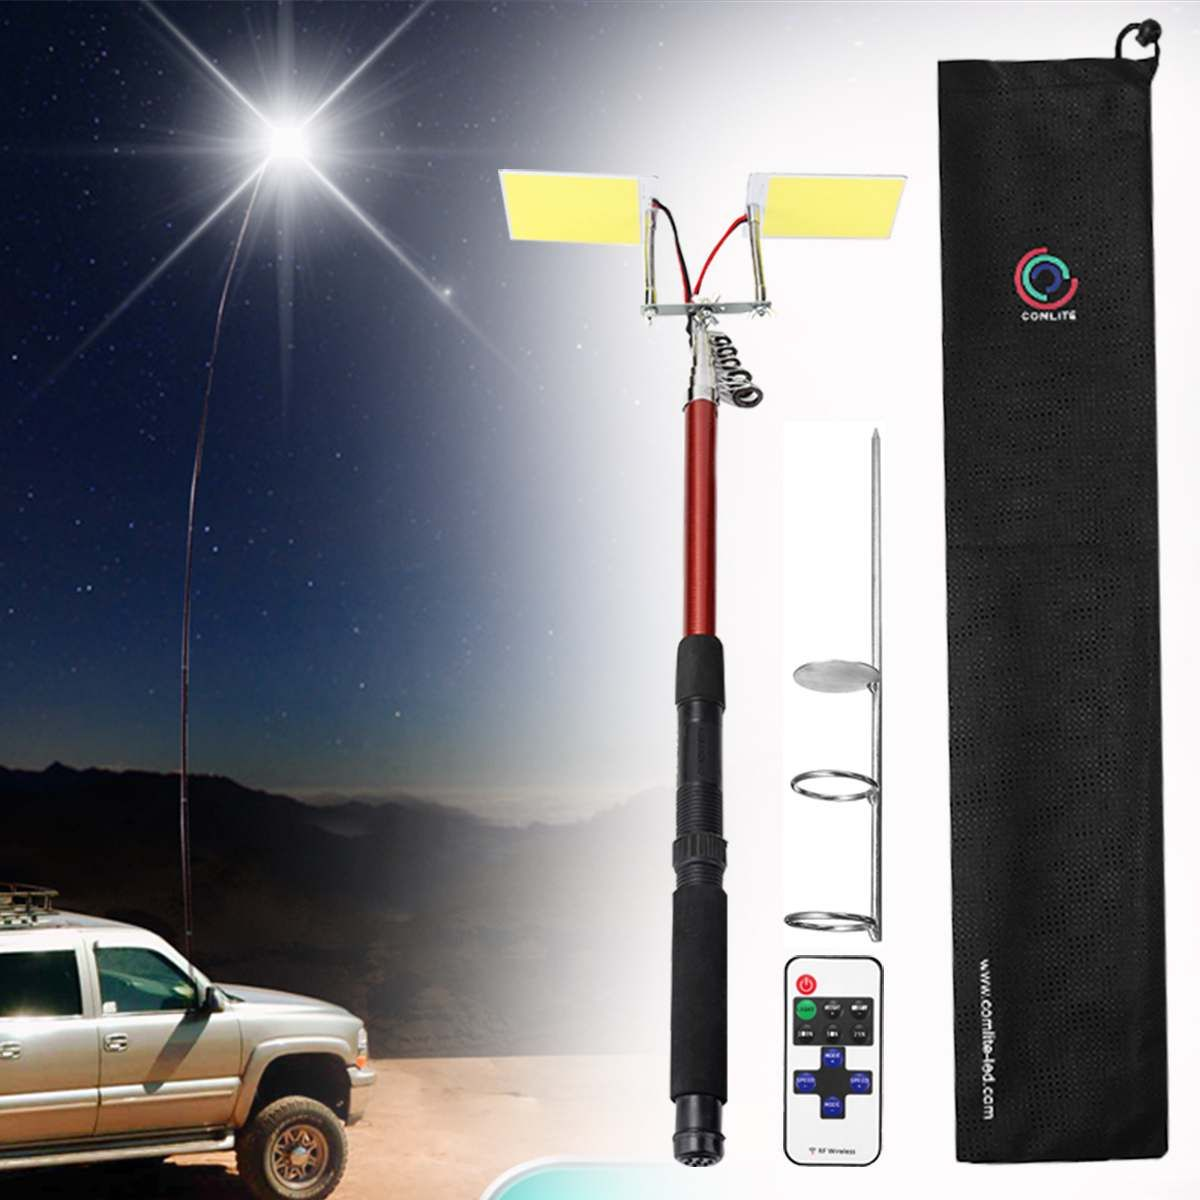 3 75m 12v Telescopic Led Fishing Rod Outdoor Lantern Camping Lamp Light With Remote Control For Road Trip Self Driv In 2020 Camping Lamp Outdoor Lanterns Outside Lamps